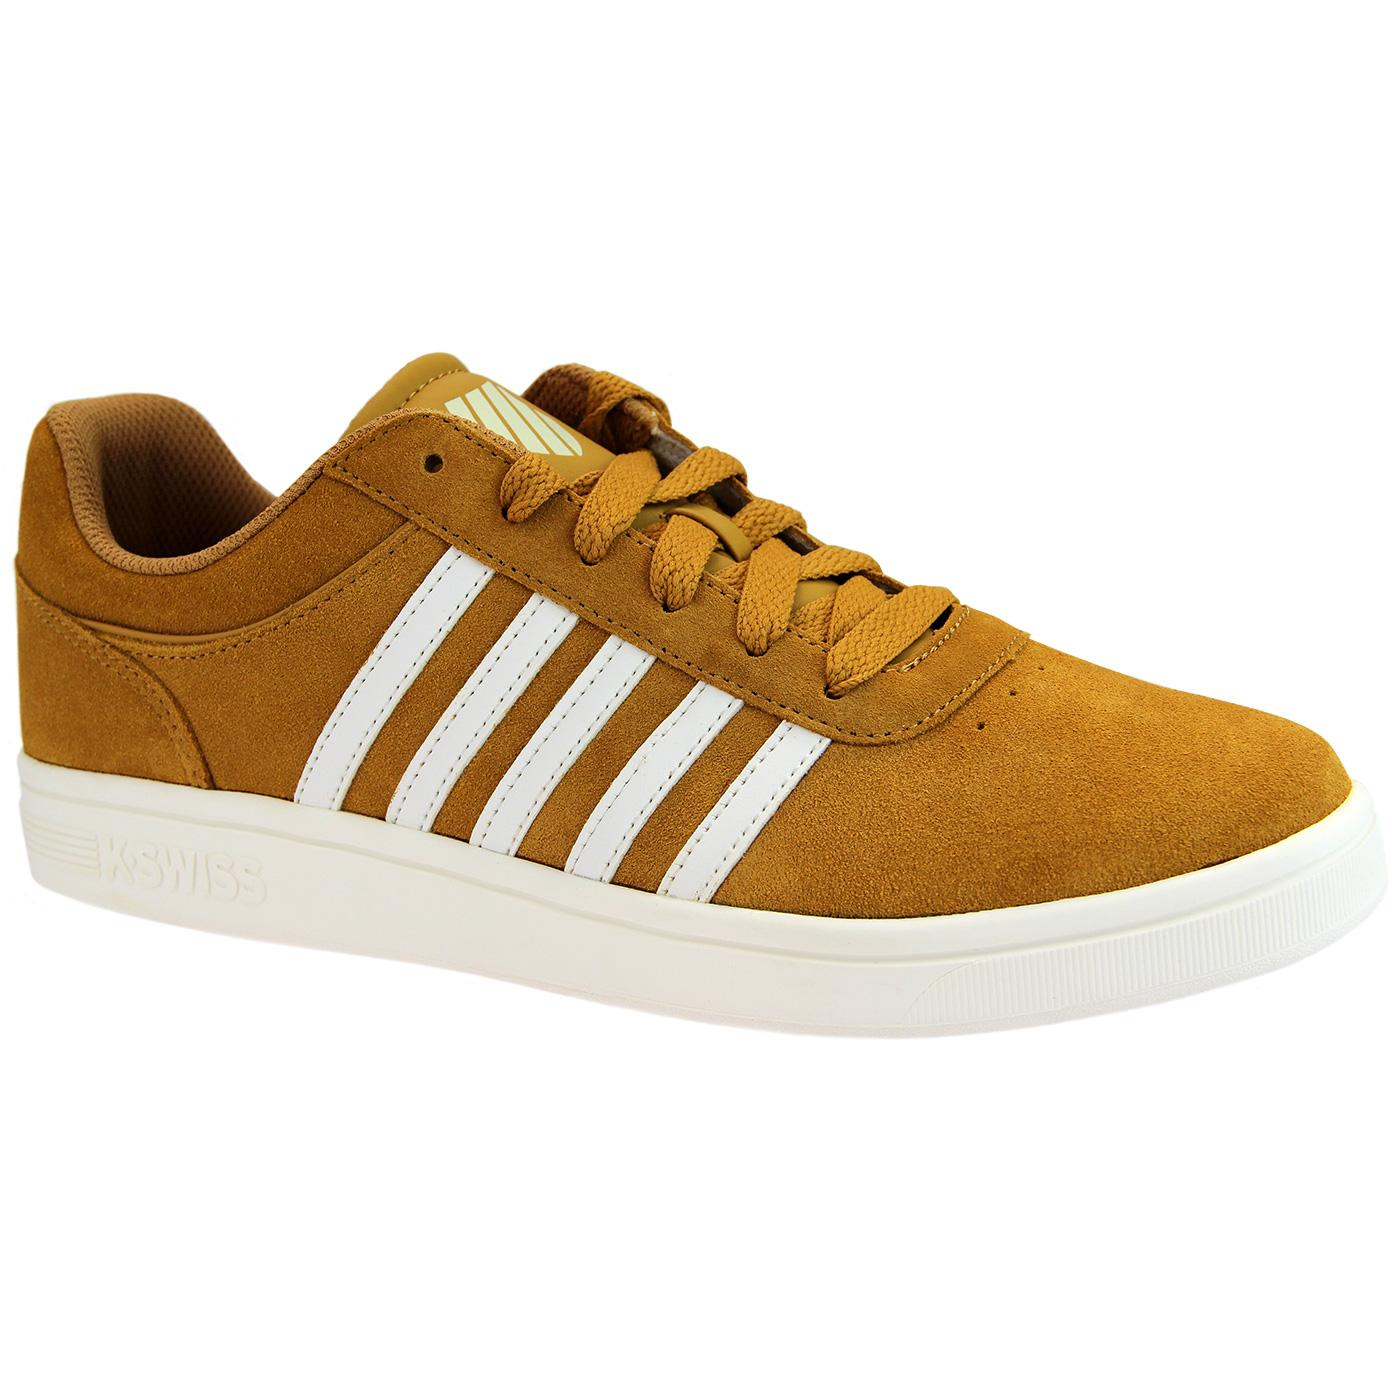 Court Cheswick K-SWISS Suede 70s Tennis Trainers A